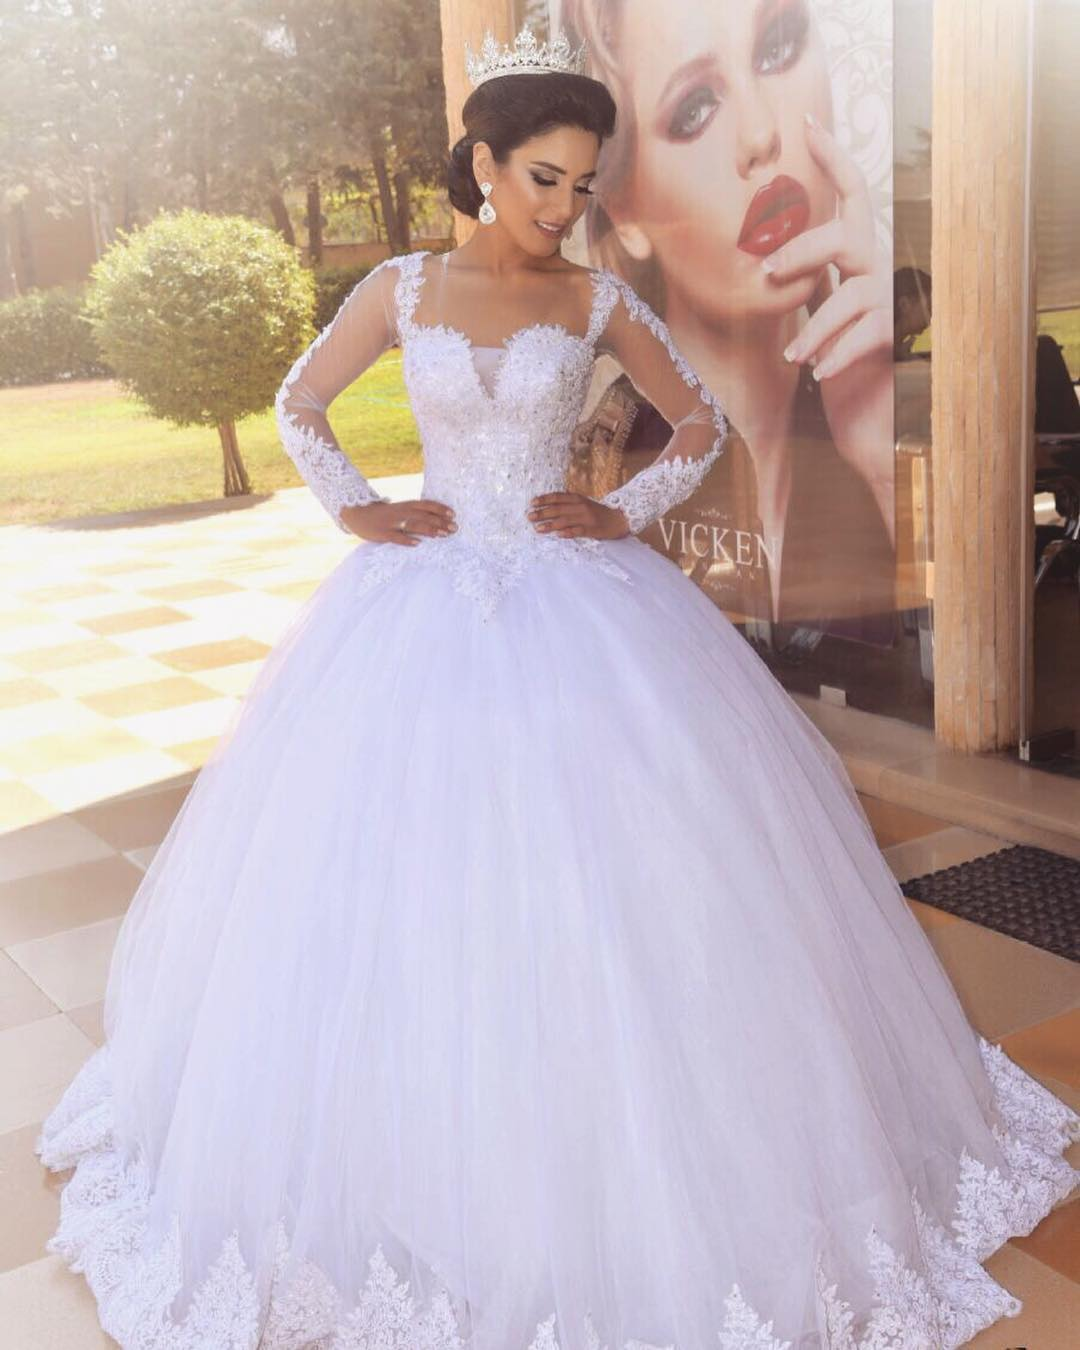 Formal Long Sleeve Wedding Dress,White Tulle White Wedding Dresses,Ball Gown Bridal Dresses with Appliques